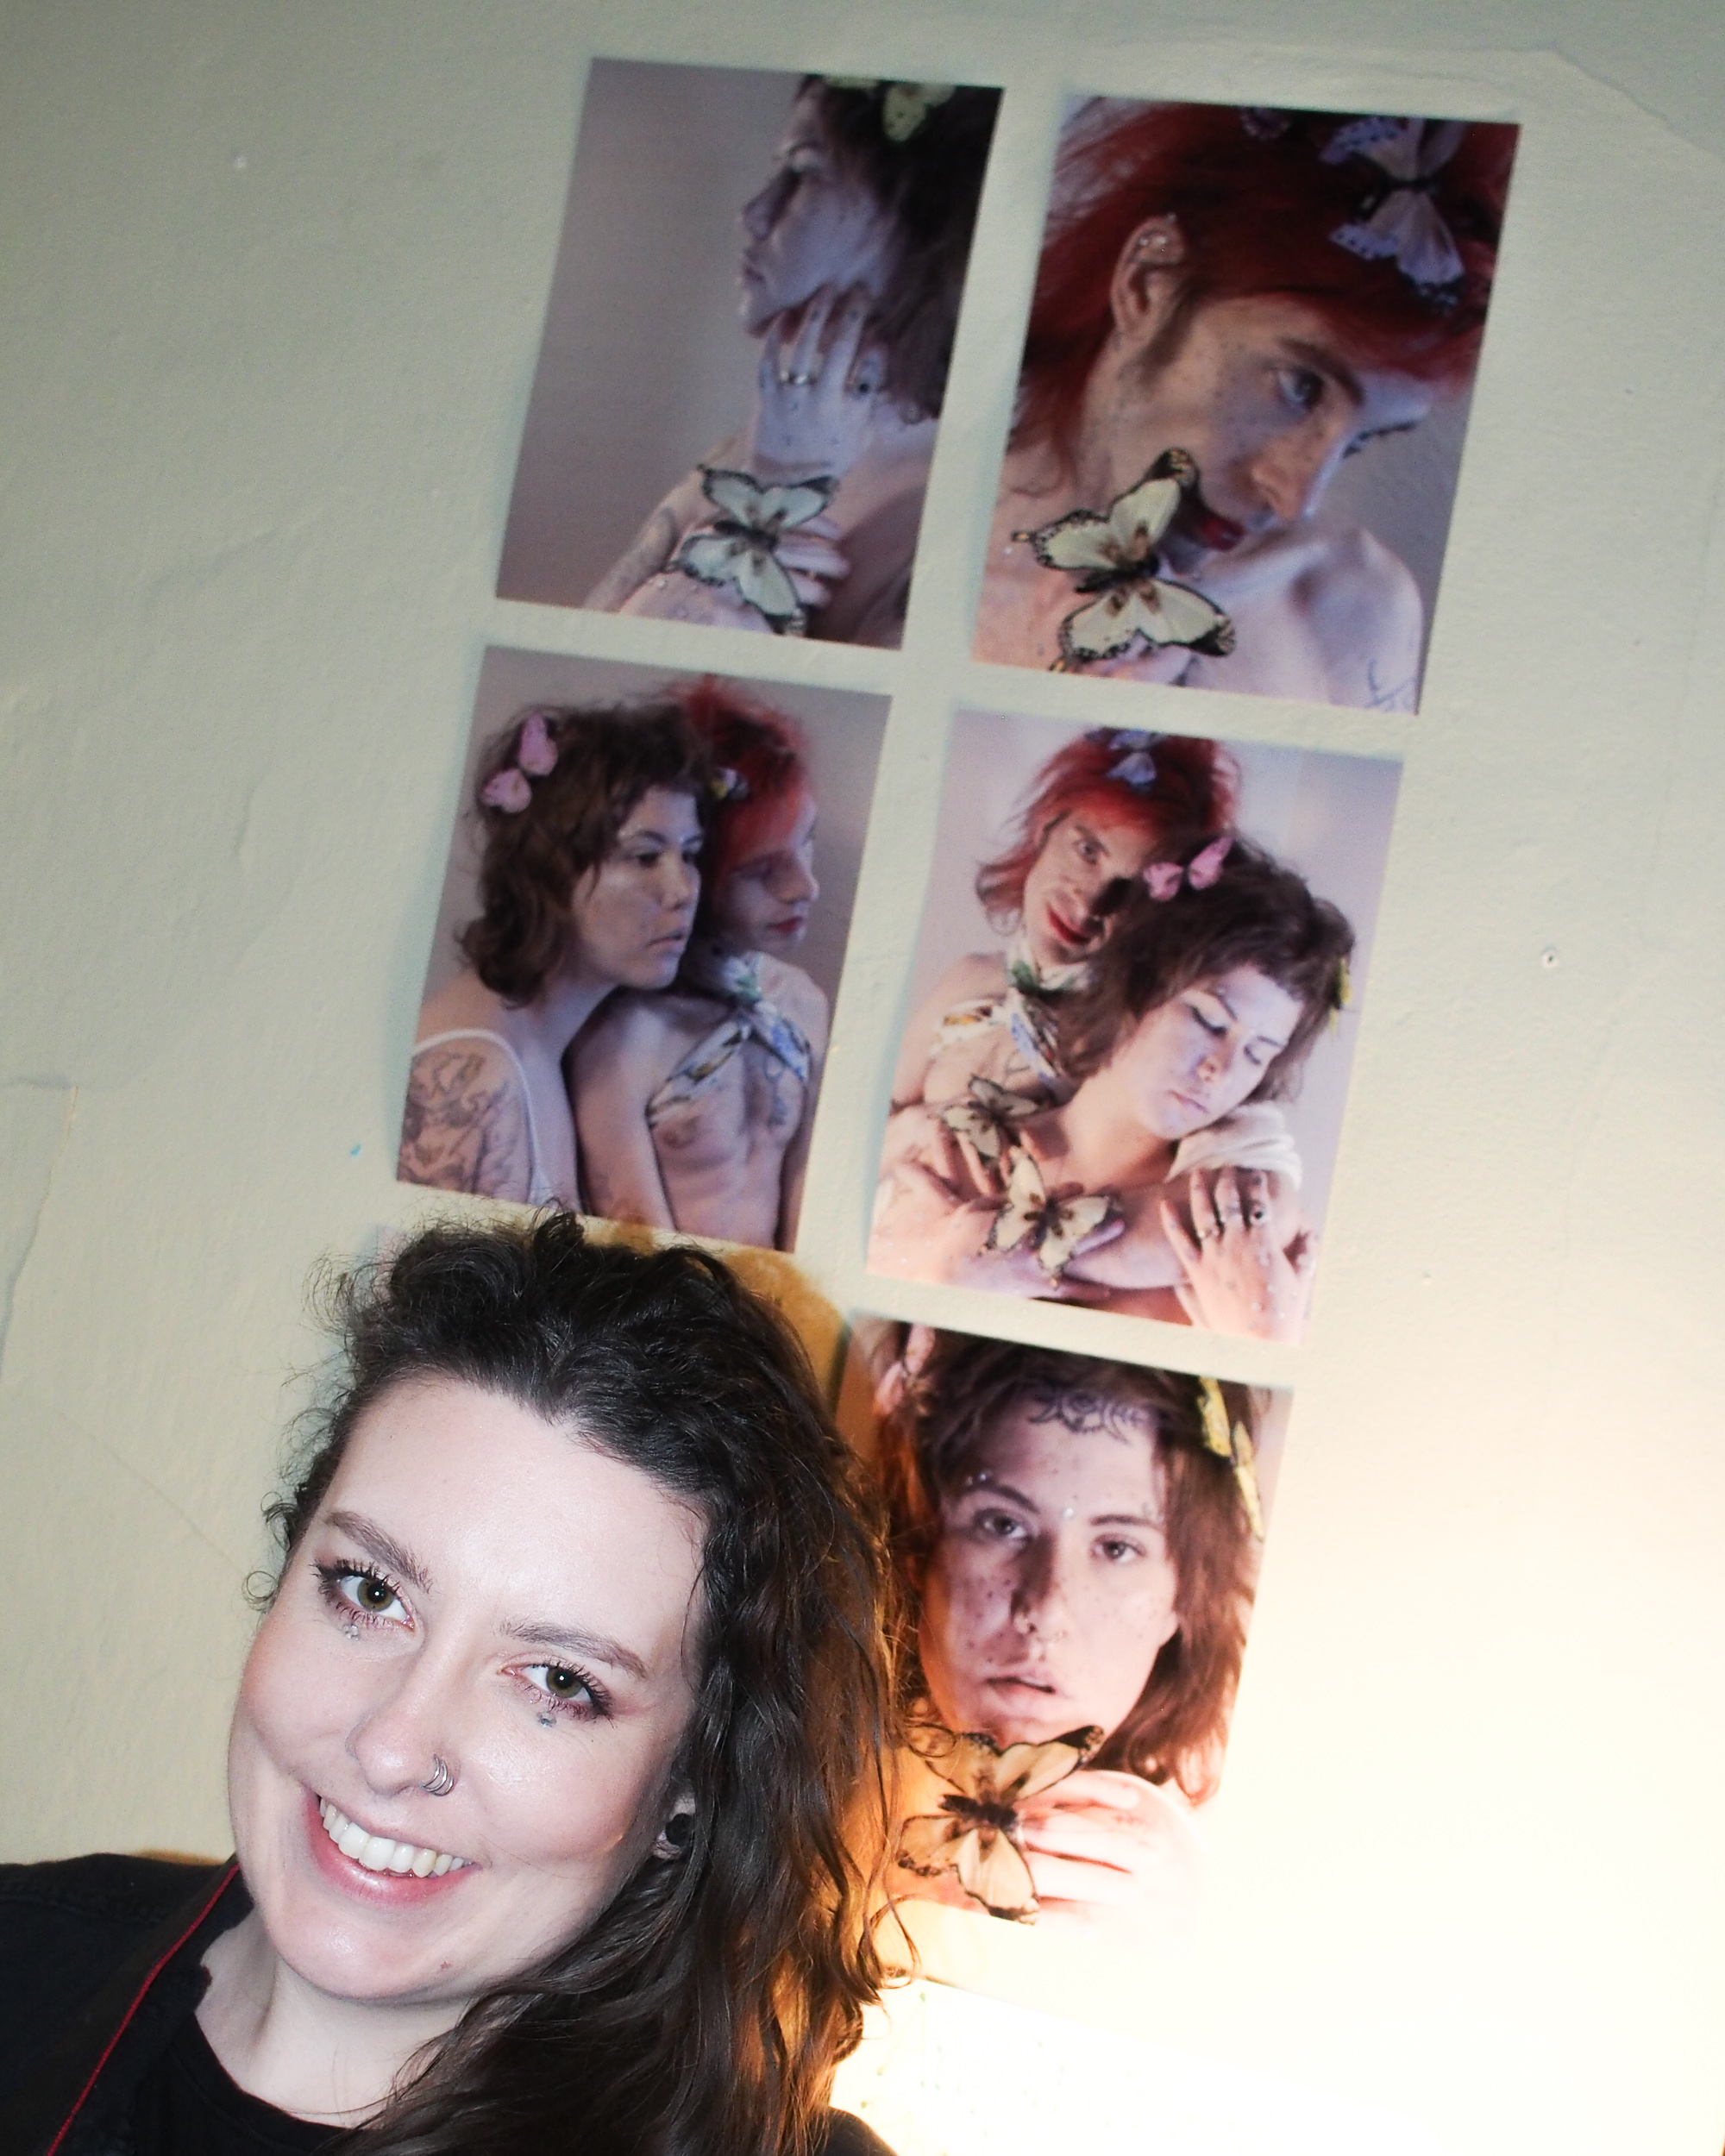 Angelia (@angeliarossberg_photography) poses in front of her dreamy photos of Mary Jo Carter and J